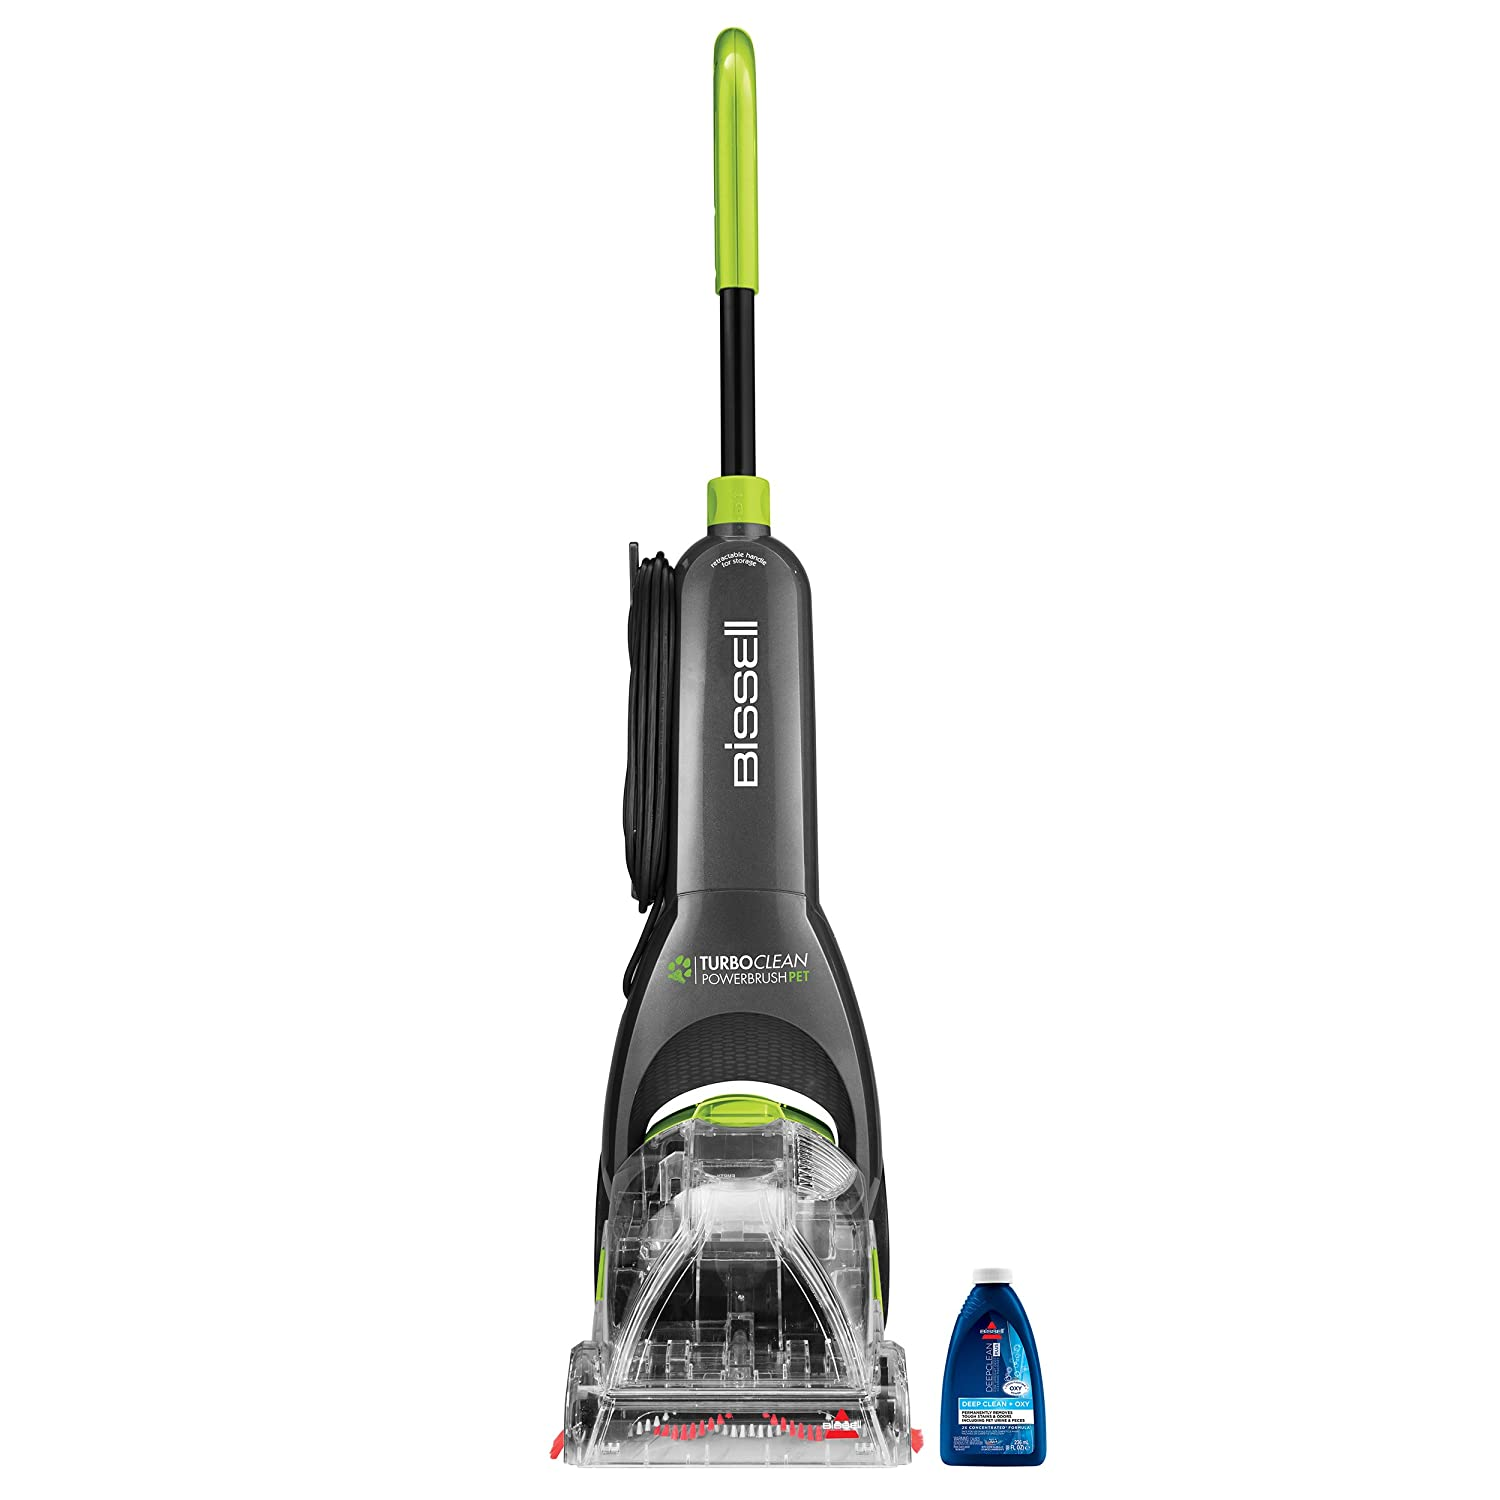 Bissell Turboclean Powerbrush Pet Full Size Upright Carpet Cleaner